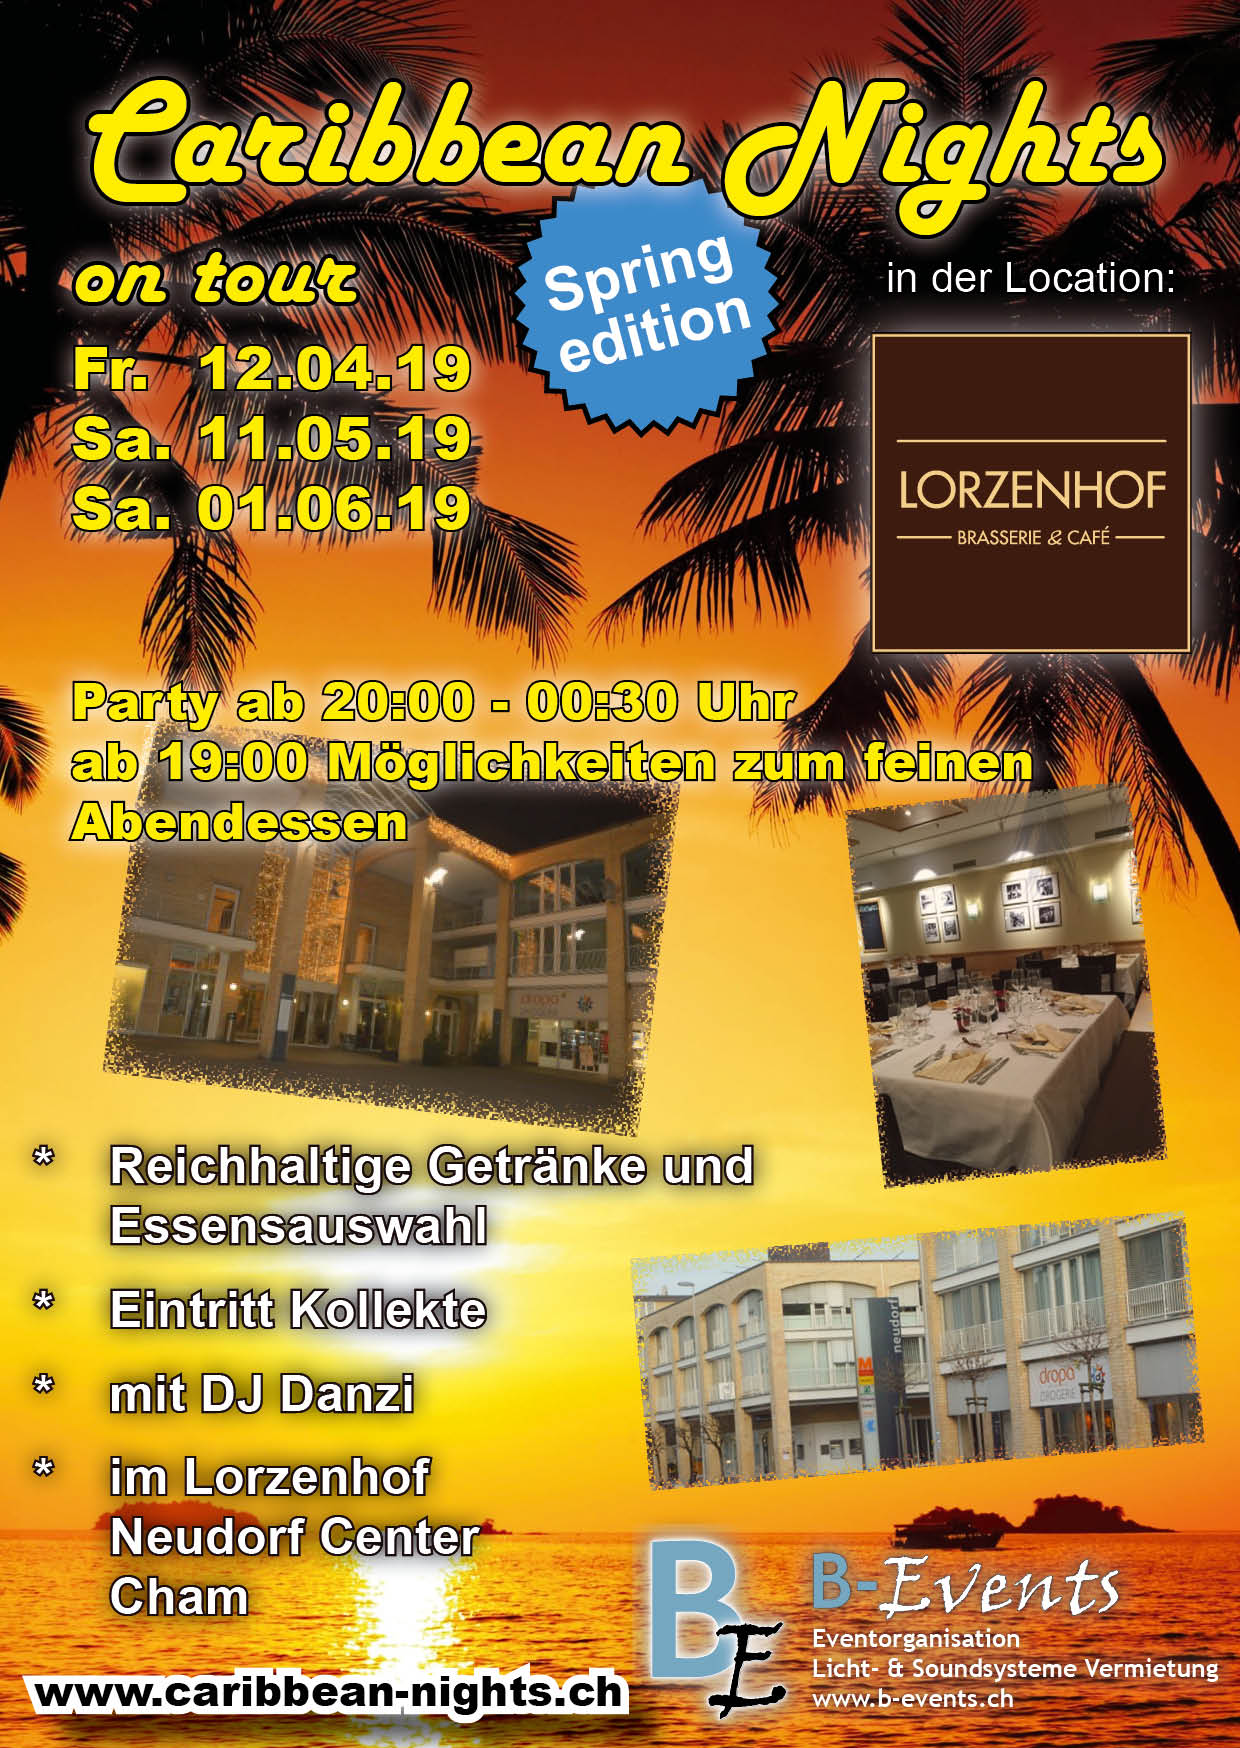 Flyer Caribbean Nights Lorzenhof 2019 V01